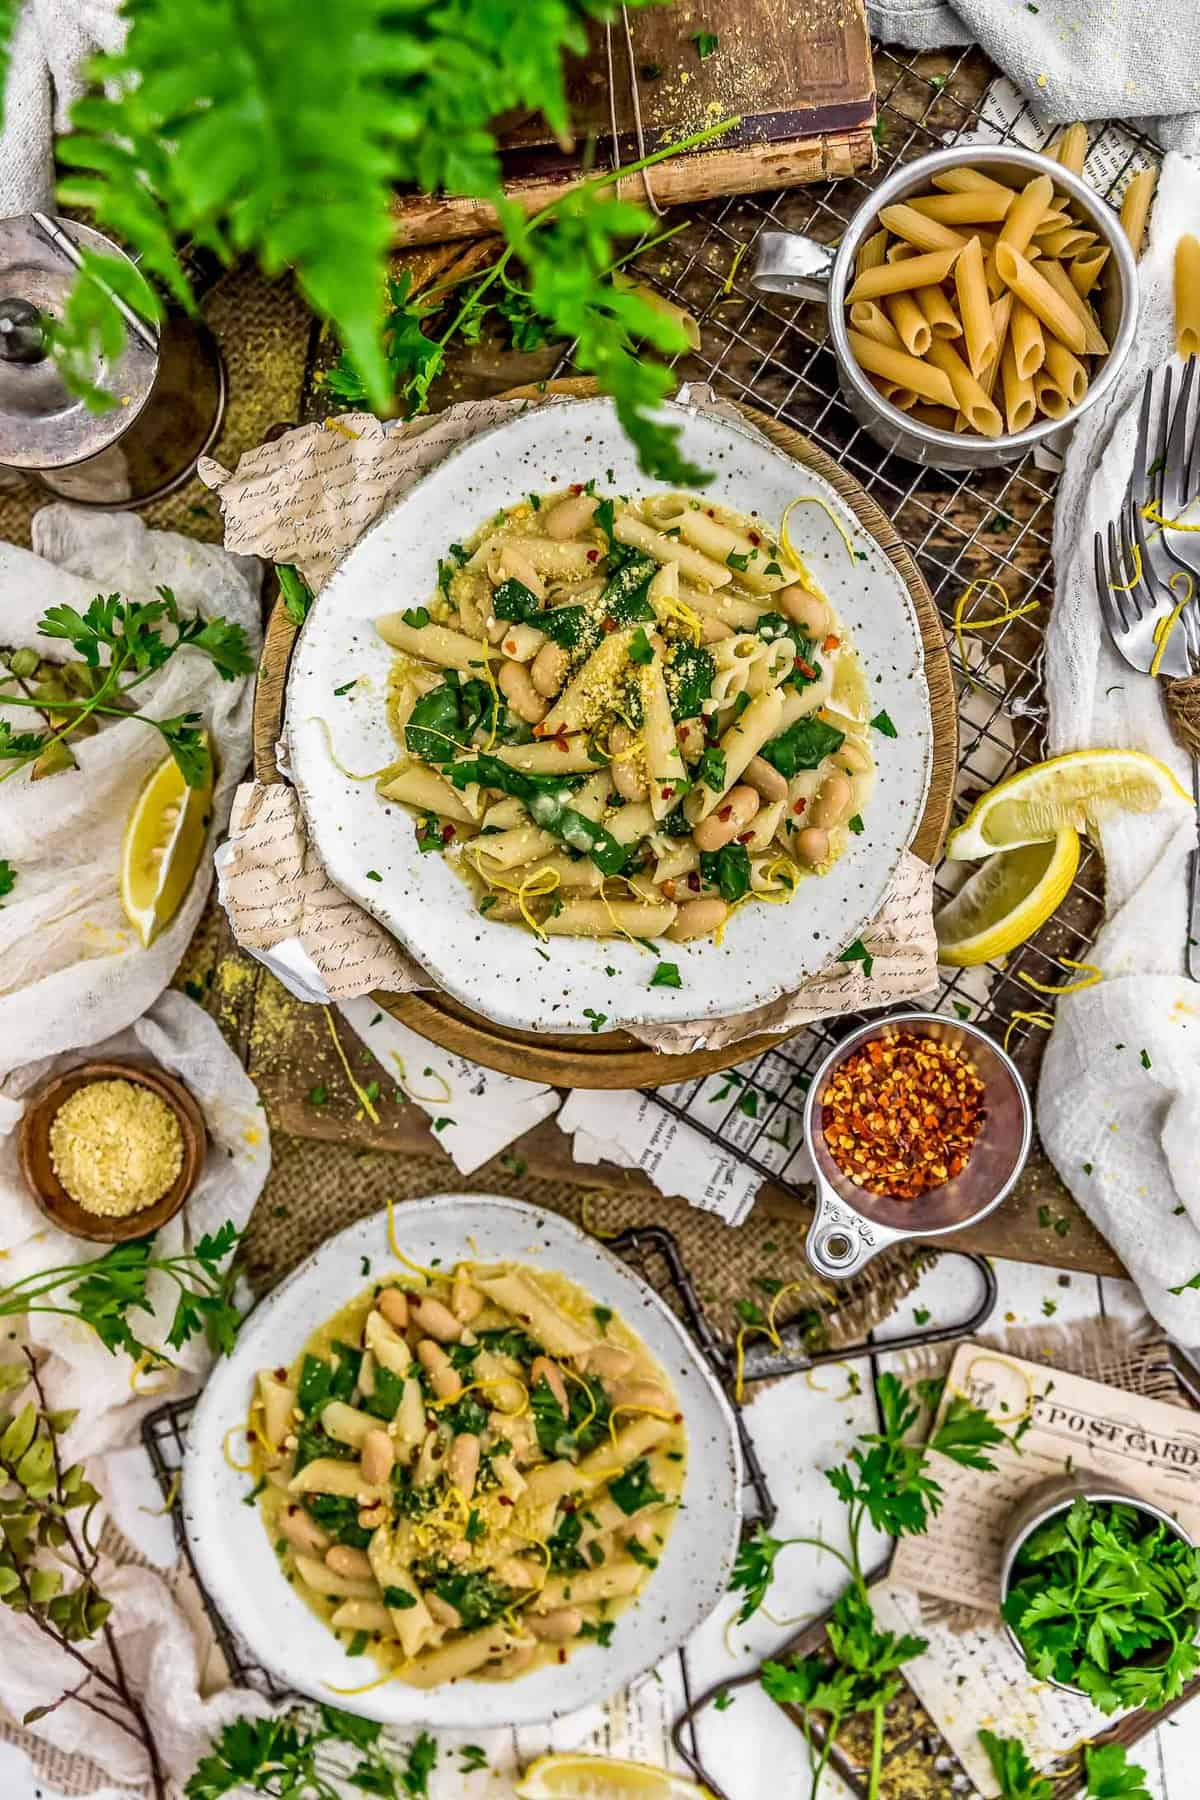 Tablescape of Lemony Pasta with Greens and Beans